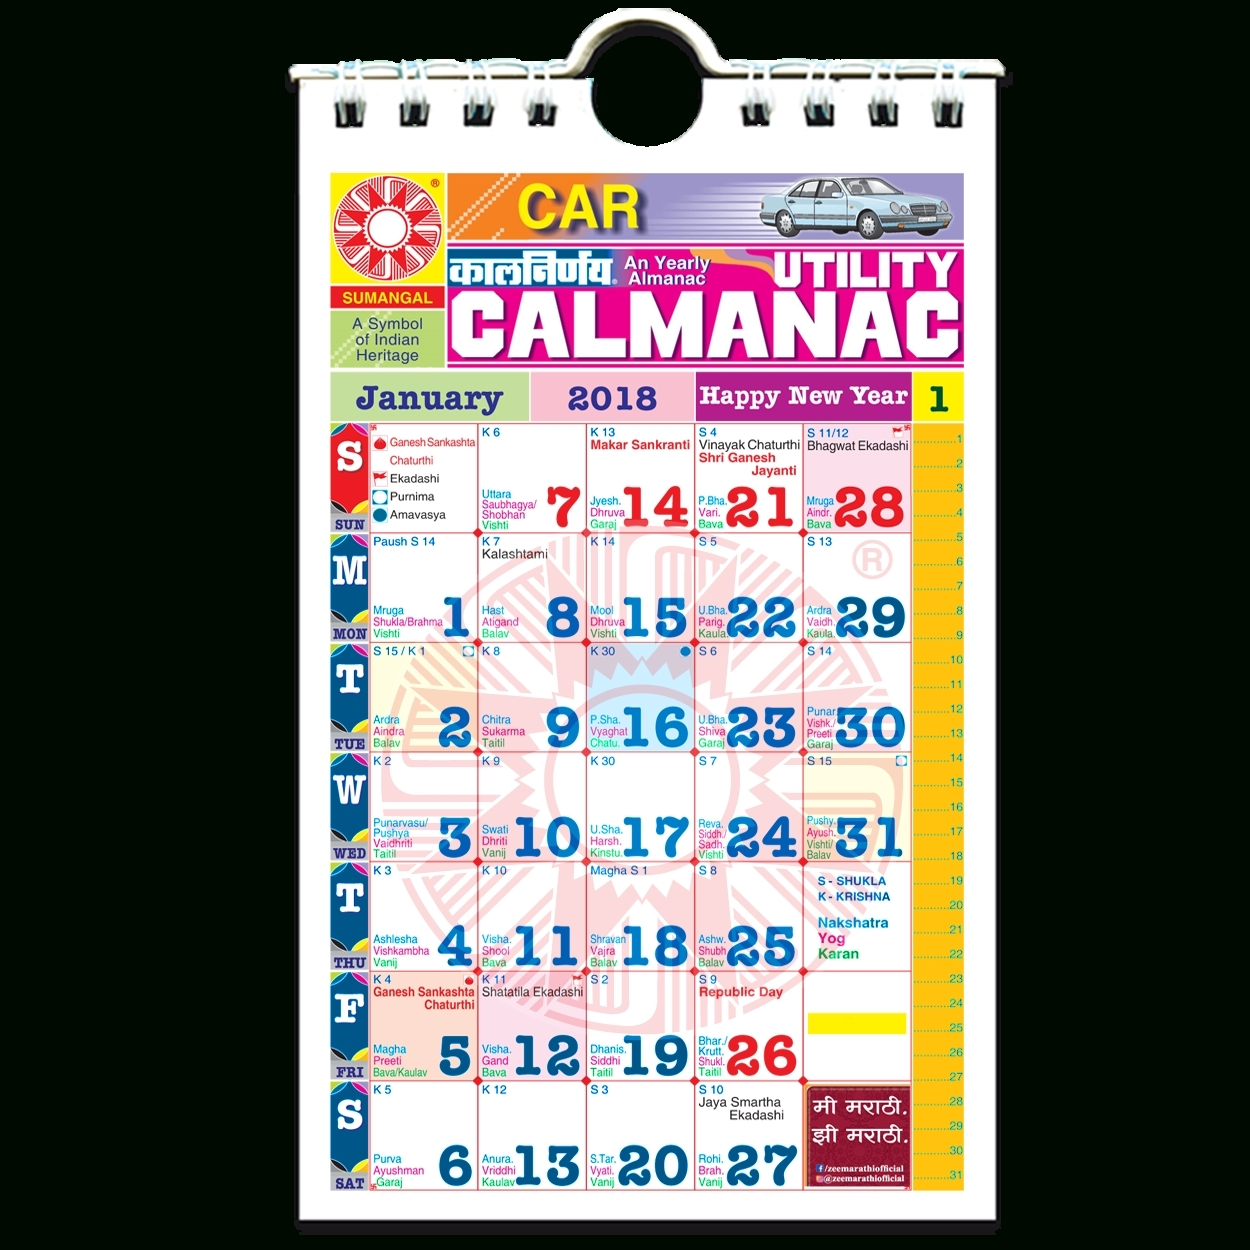 Todays Datehindu Calendar | Template Calendar Printable inside Todays Date By Hindu Calendar